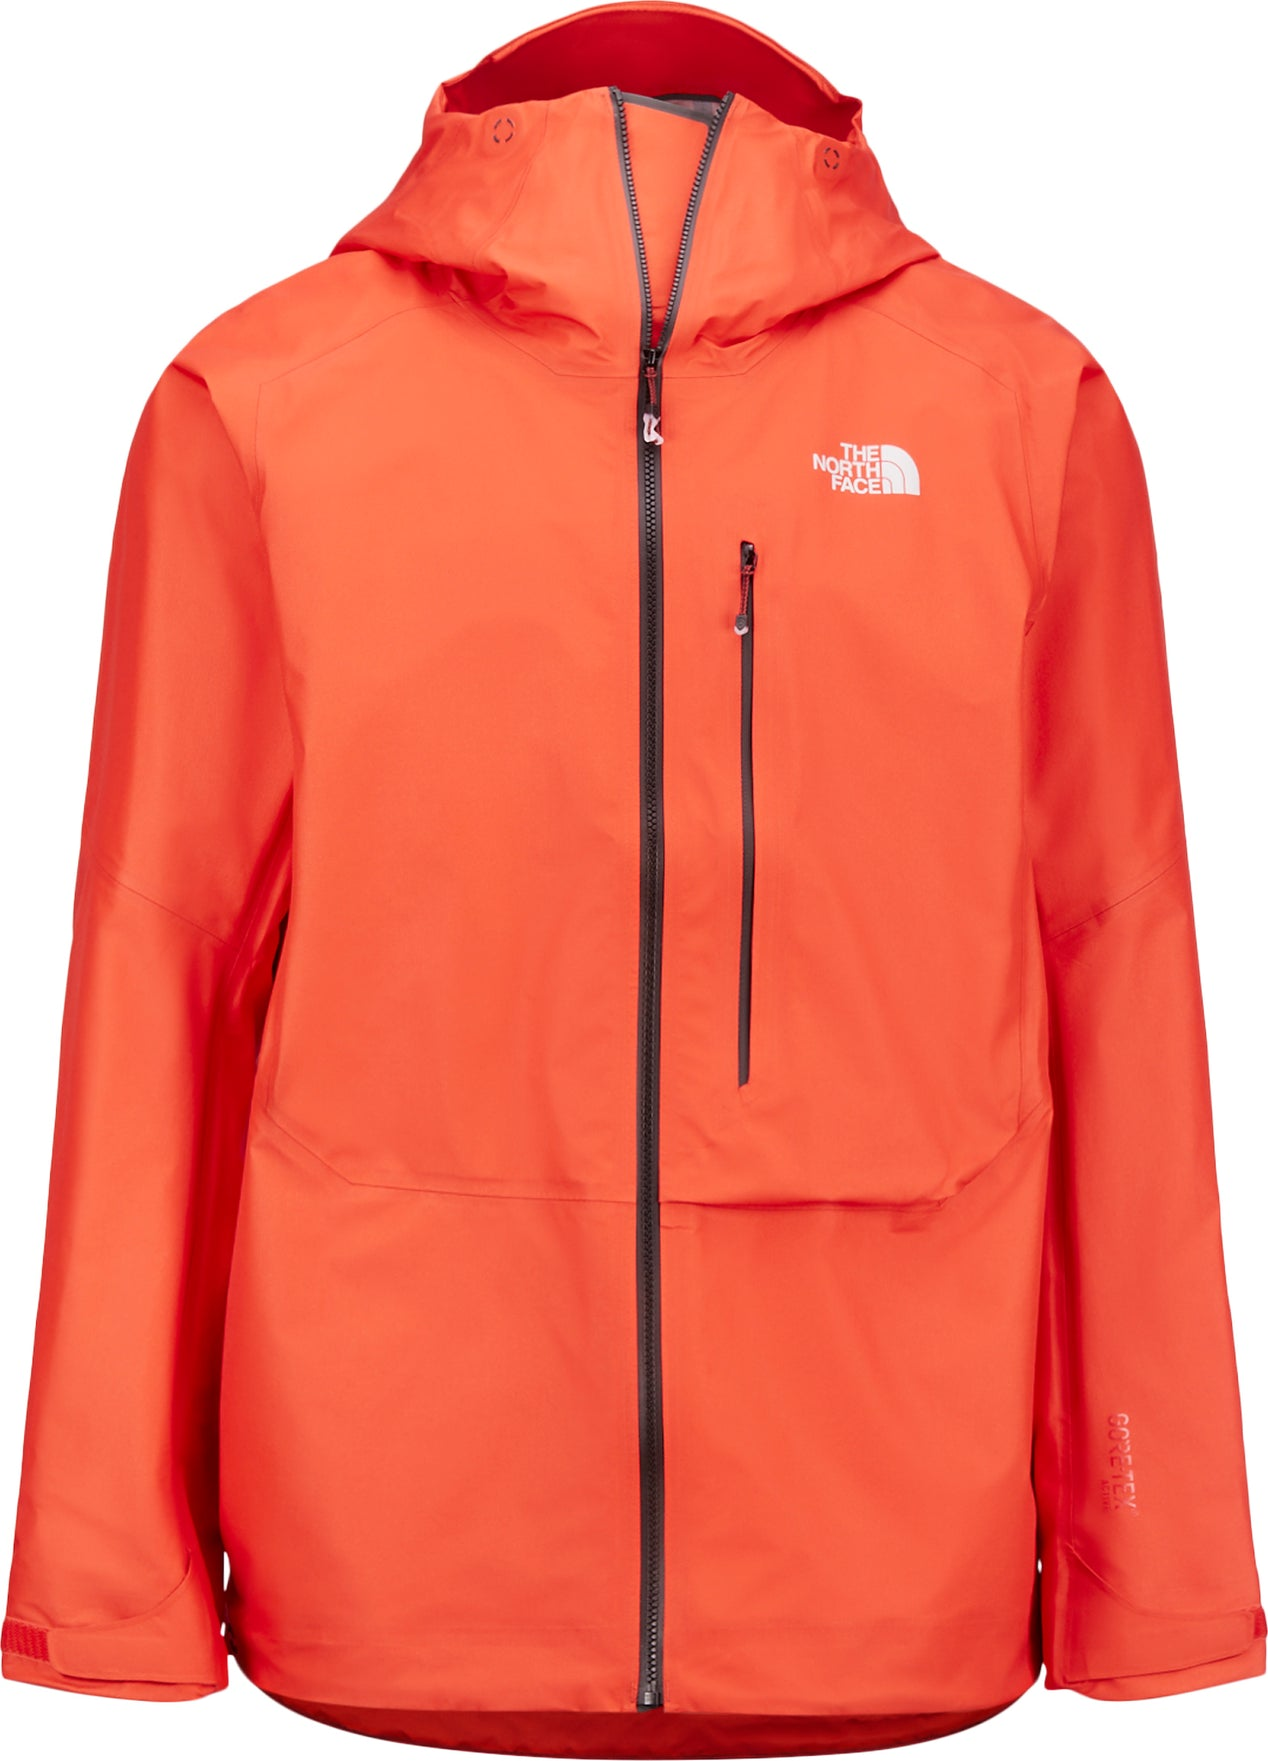 a2bbdc4a The North Face Summit L5 Proprius Gtx Active Jacket - Men's ...